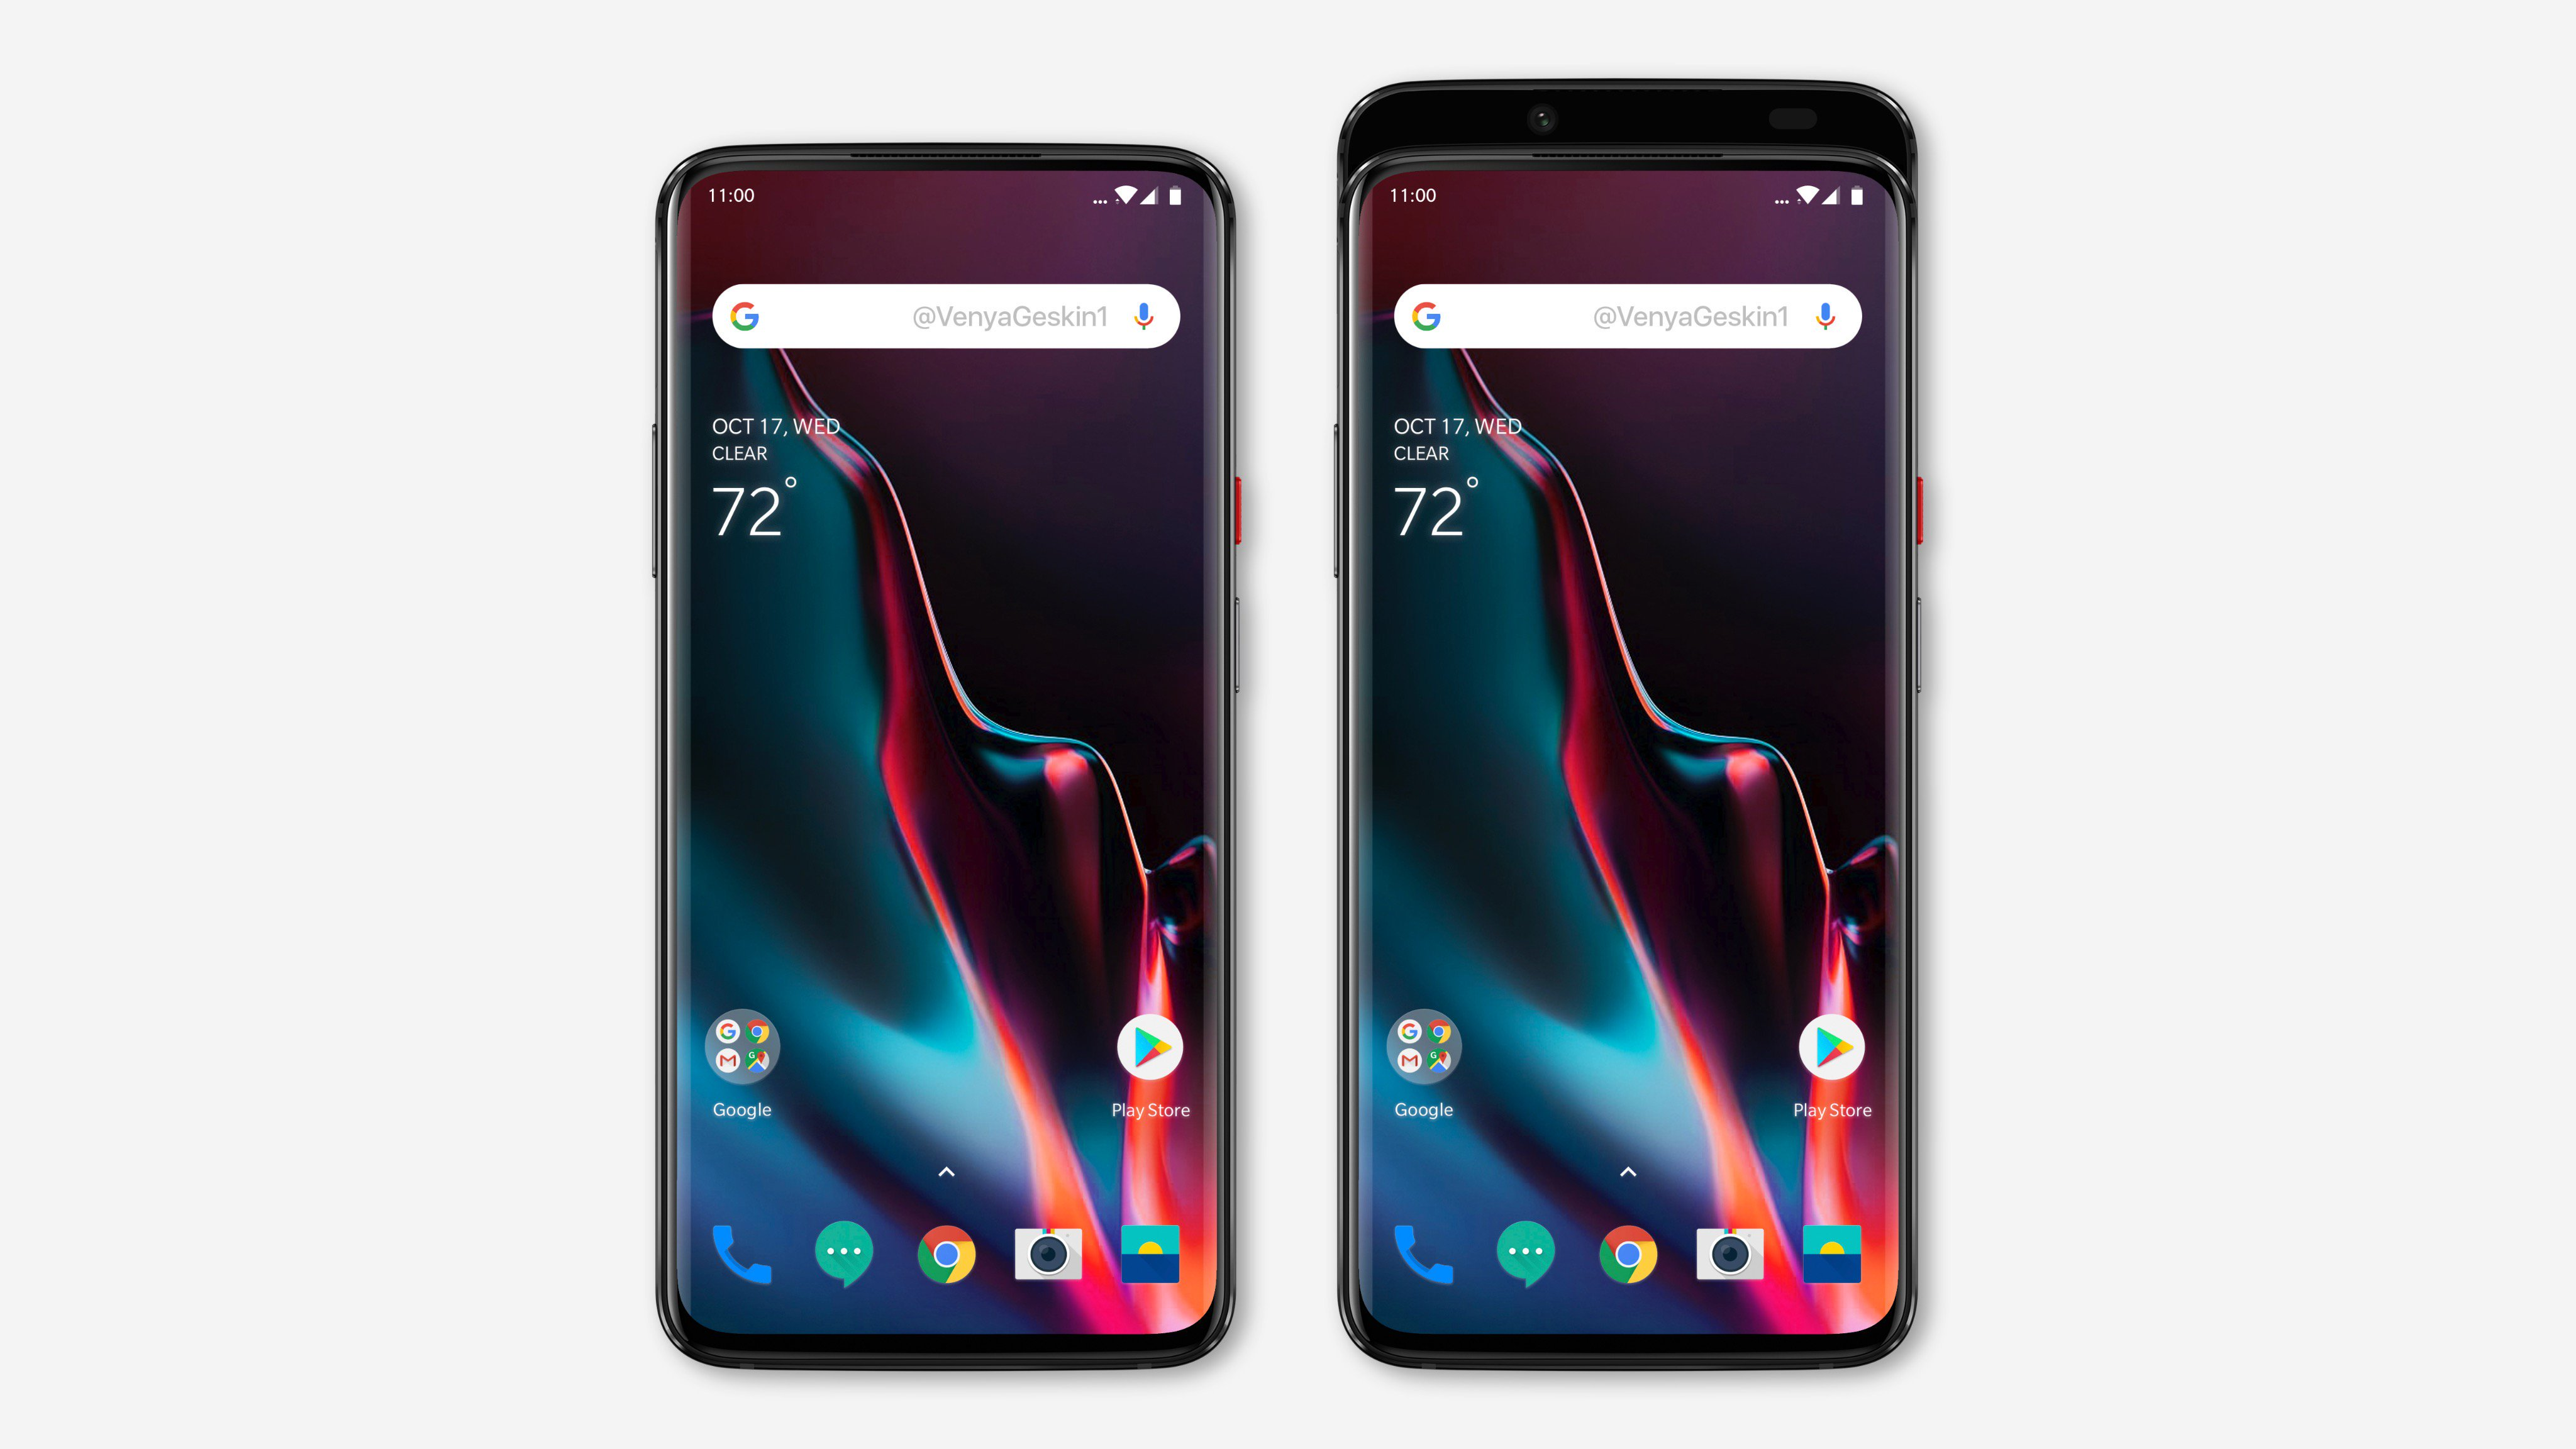 Image Showing the Render of OnePlus 7 based on the leaked image.